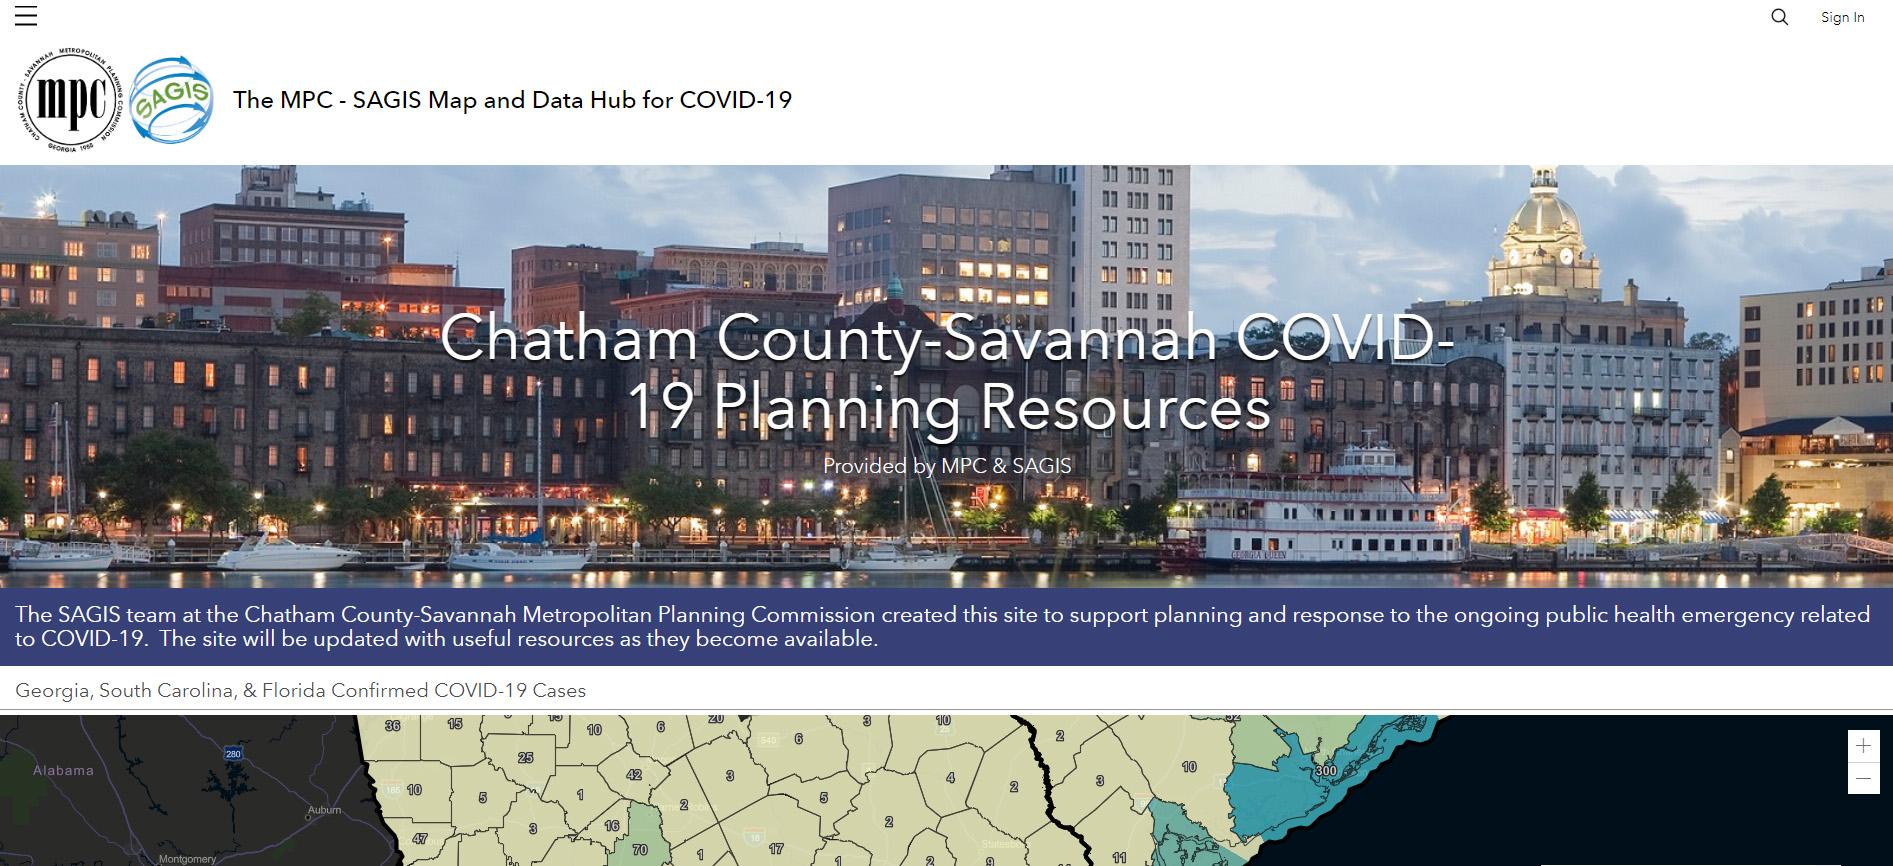 SAGIS ArcGIS Hub for COVID-19